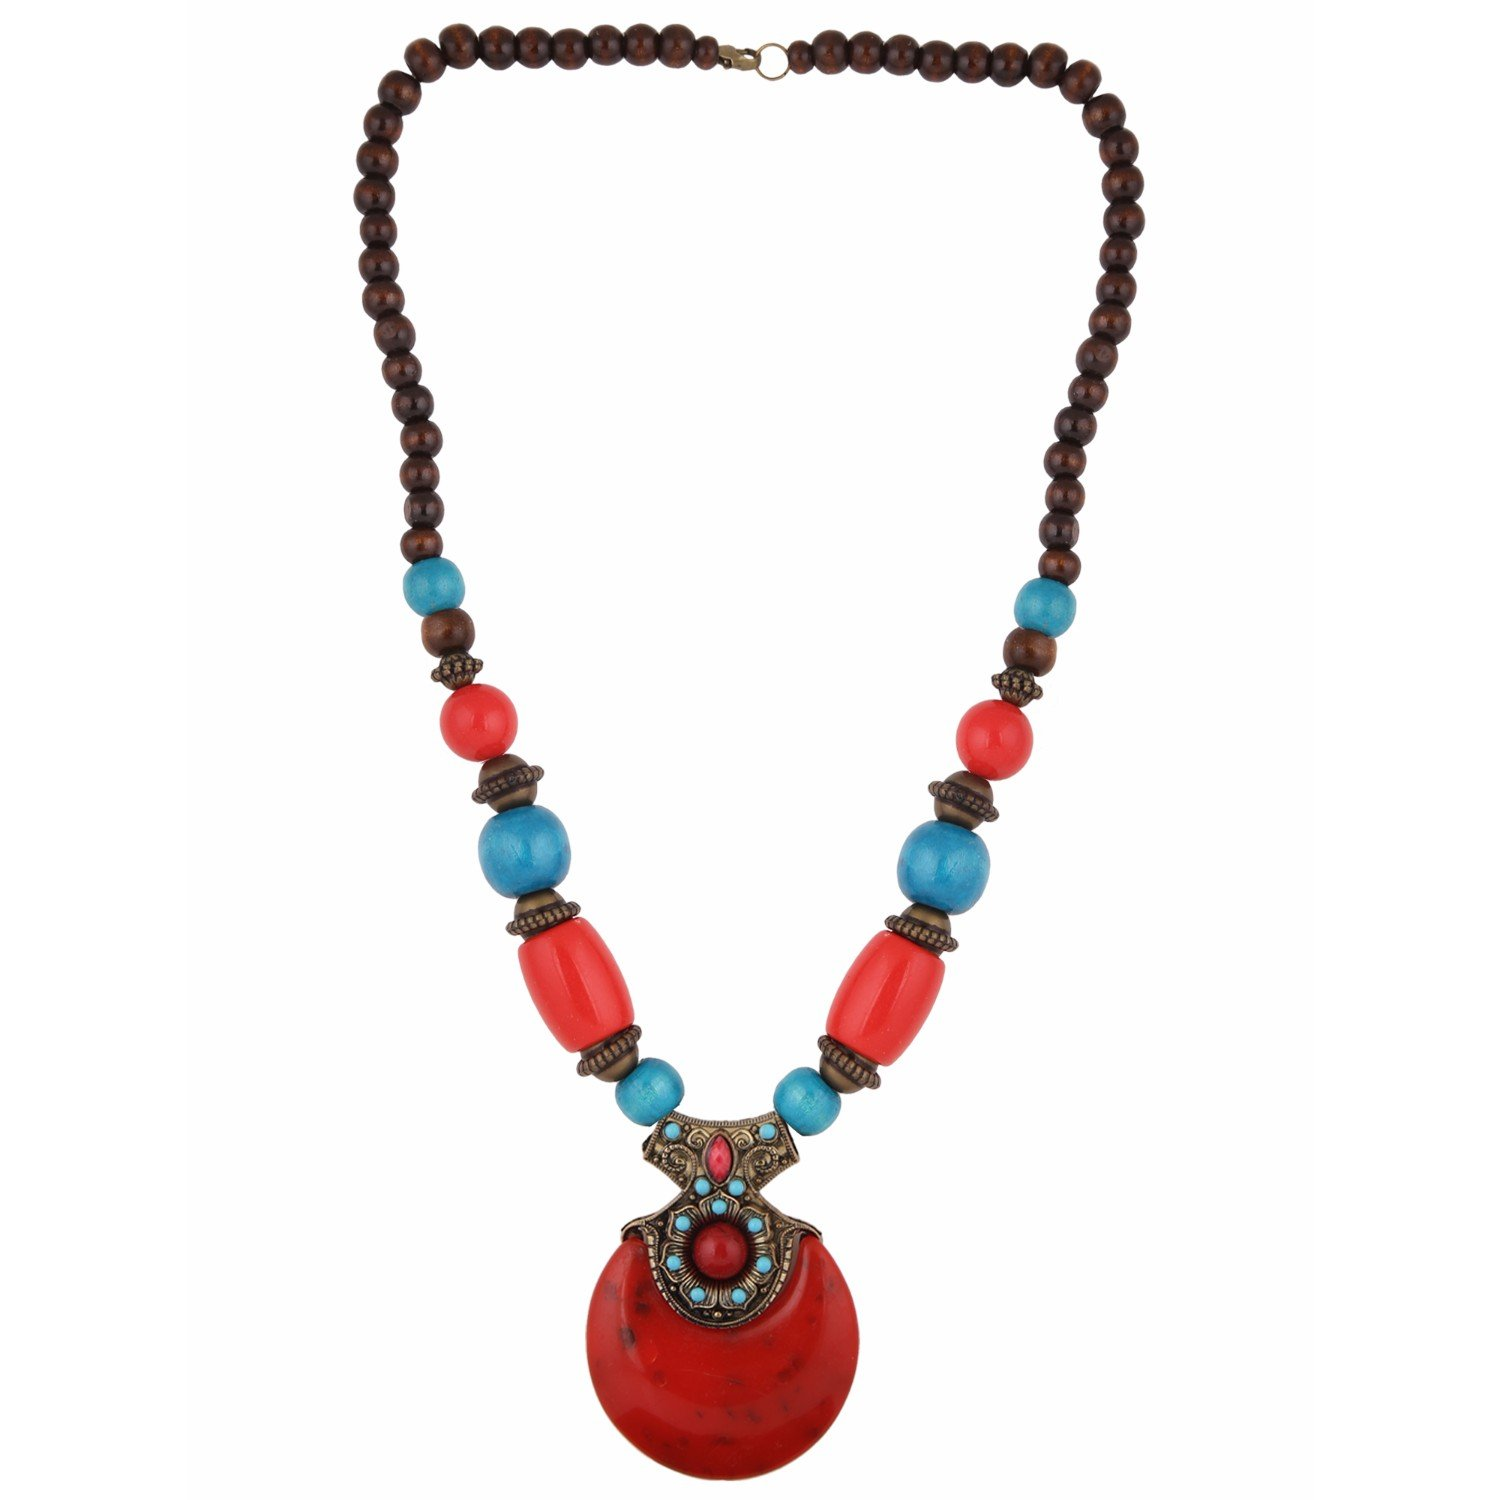 Efulgenz Handcrafted Round Chunky Antique Beaded Statement Necklace Fashion Costume Accessories for Women and Girls